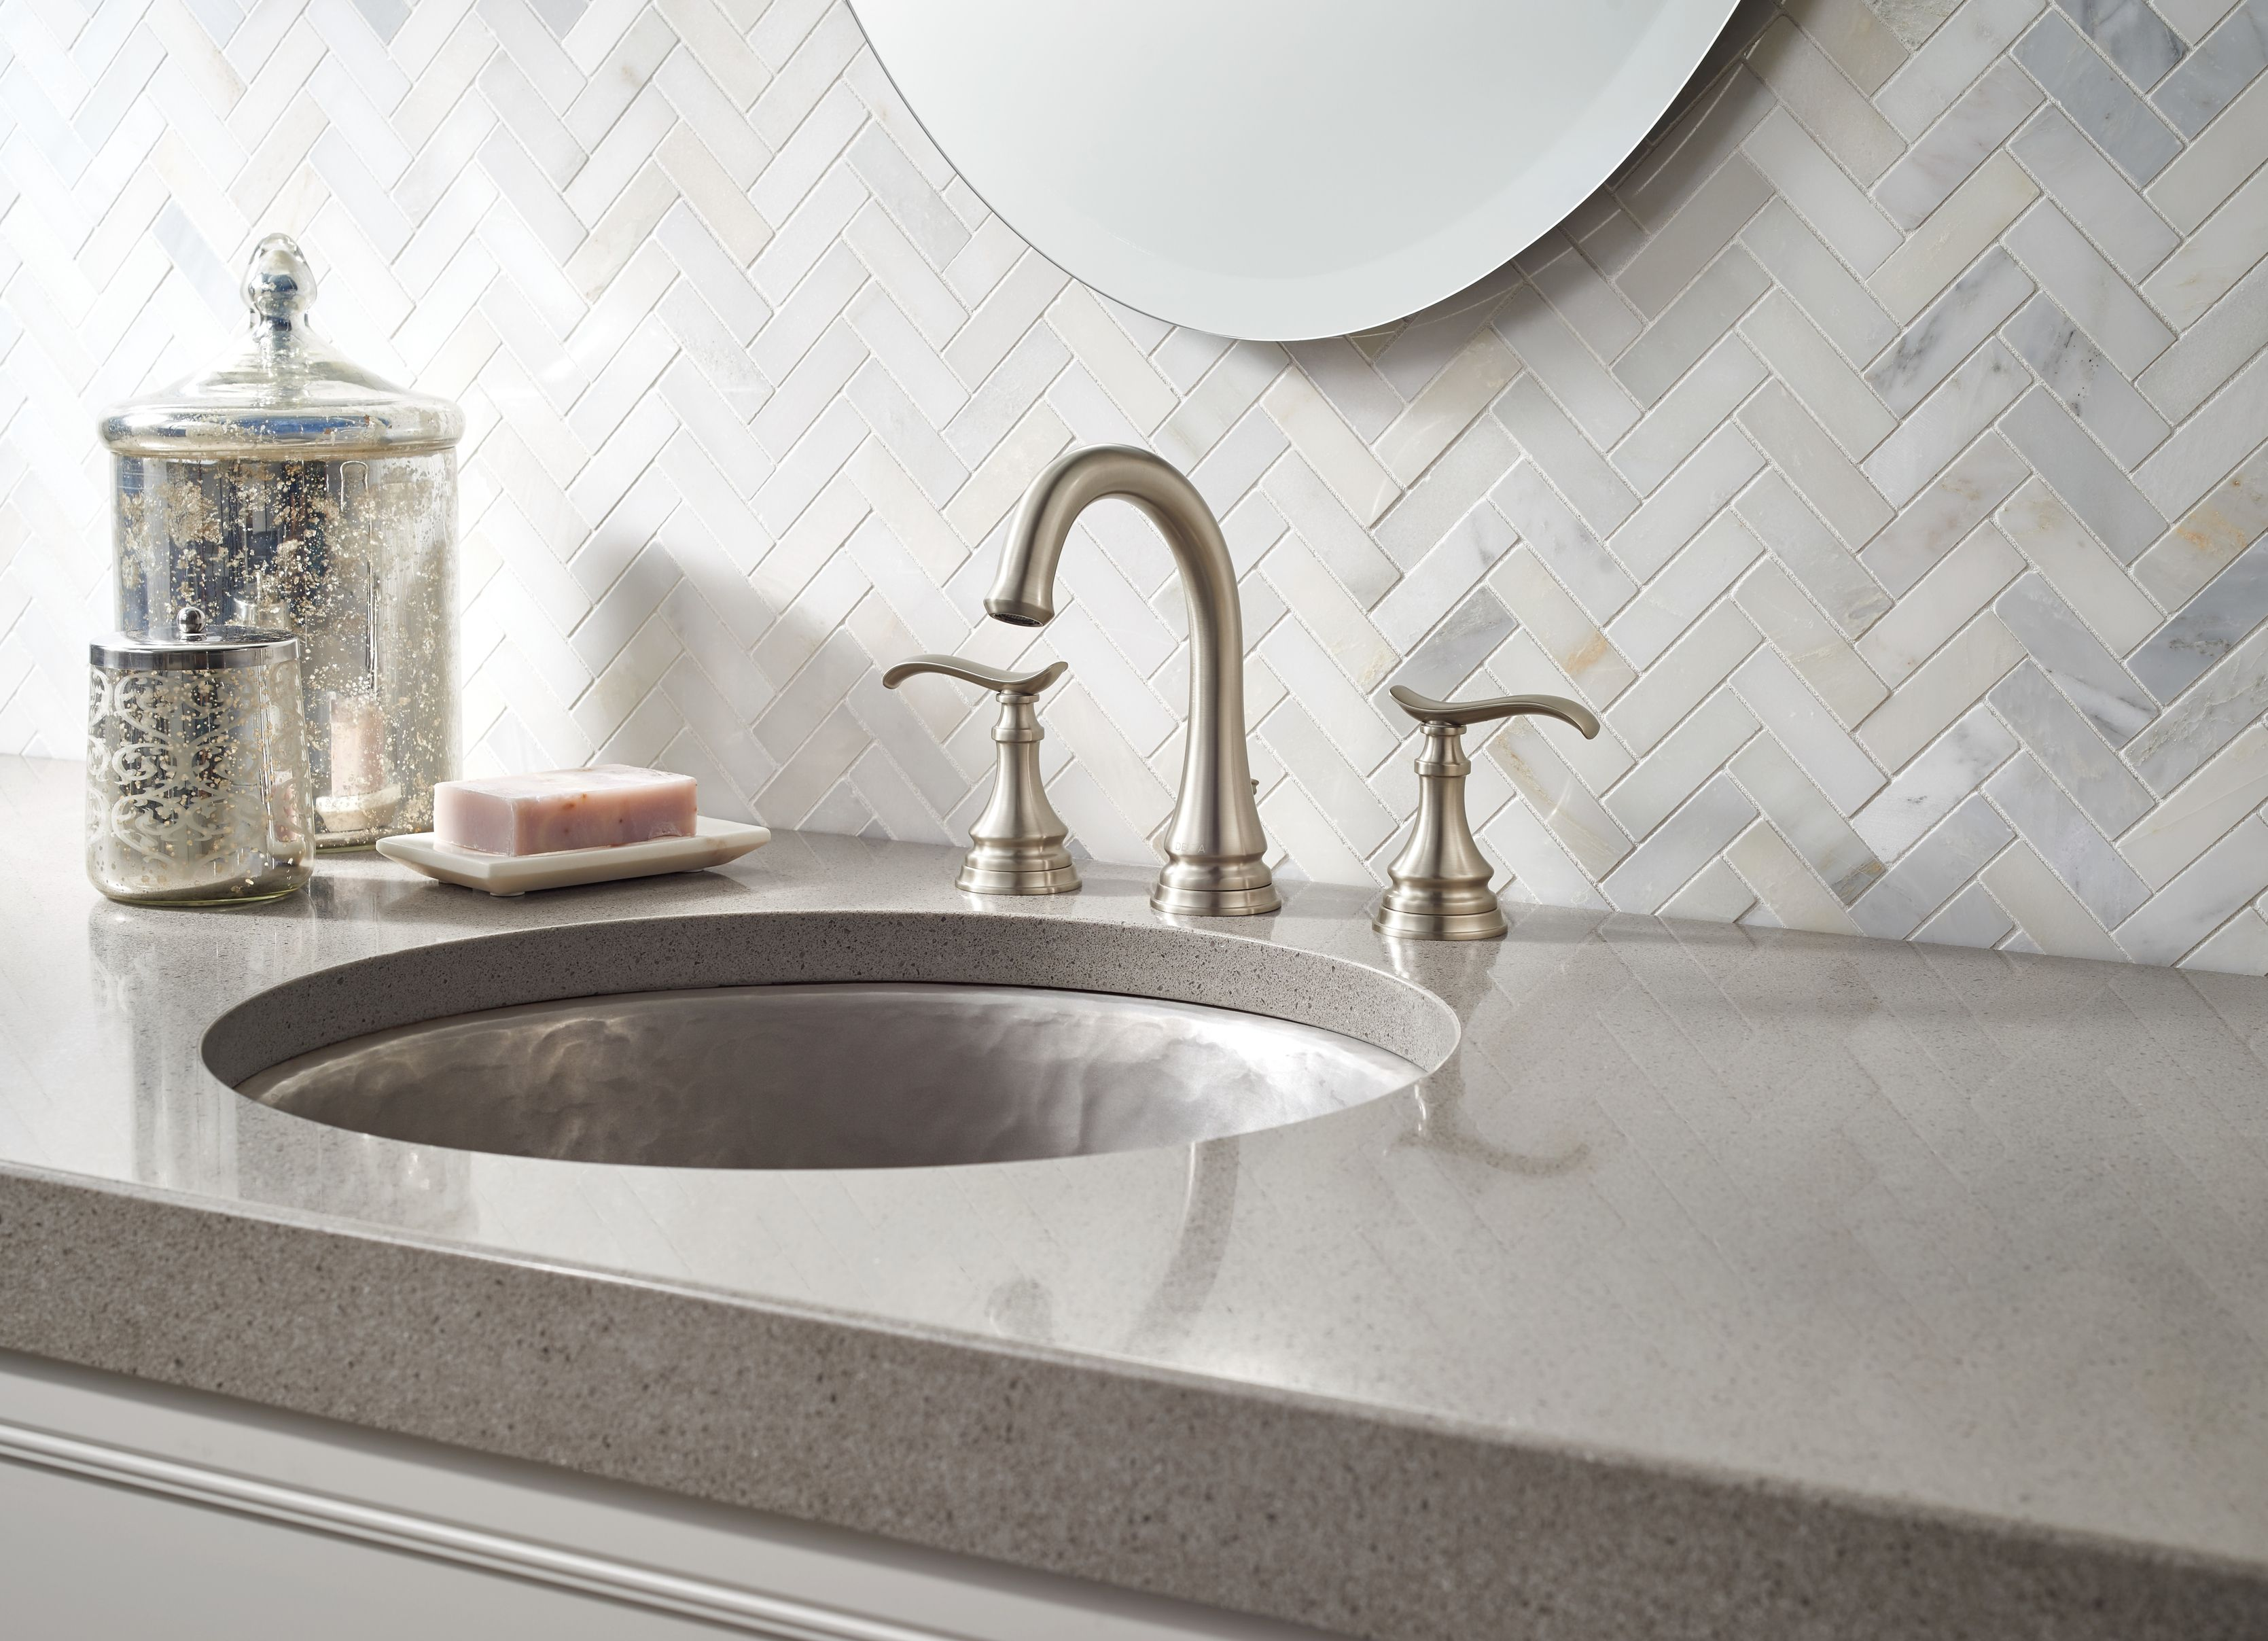 Beautiful Brushed Nickel Faucet From The Delta Faucet Porter